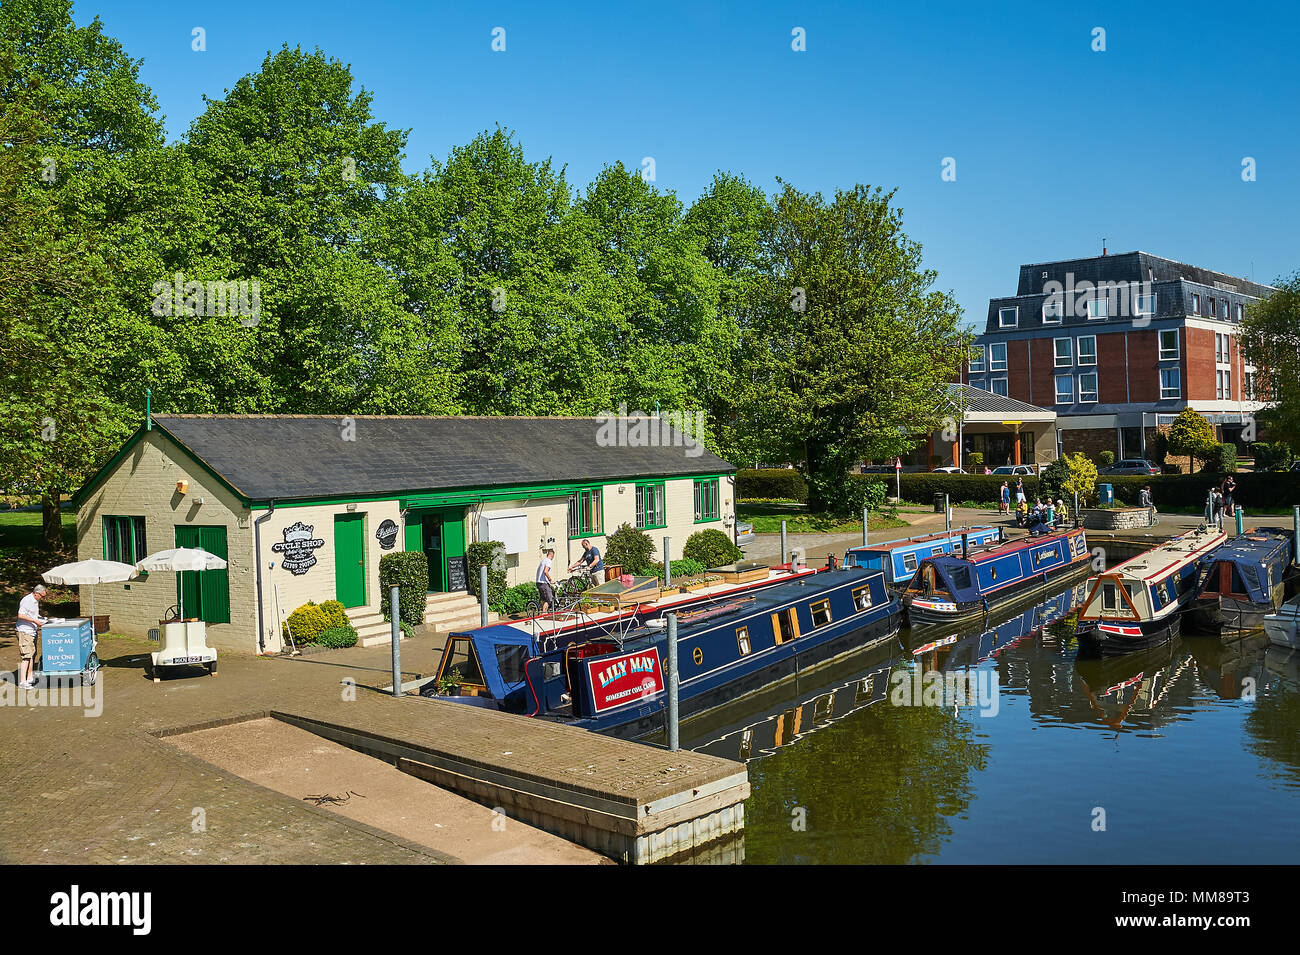 Stratford upon Avon and canal narrowboats moored on the River Avon in the centre of the town. - Stock Image